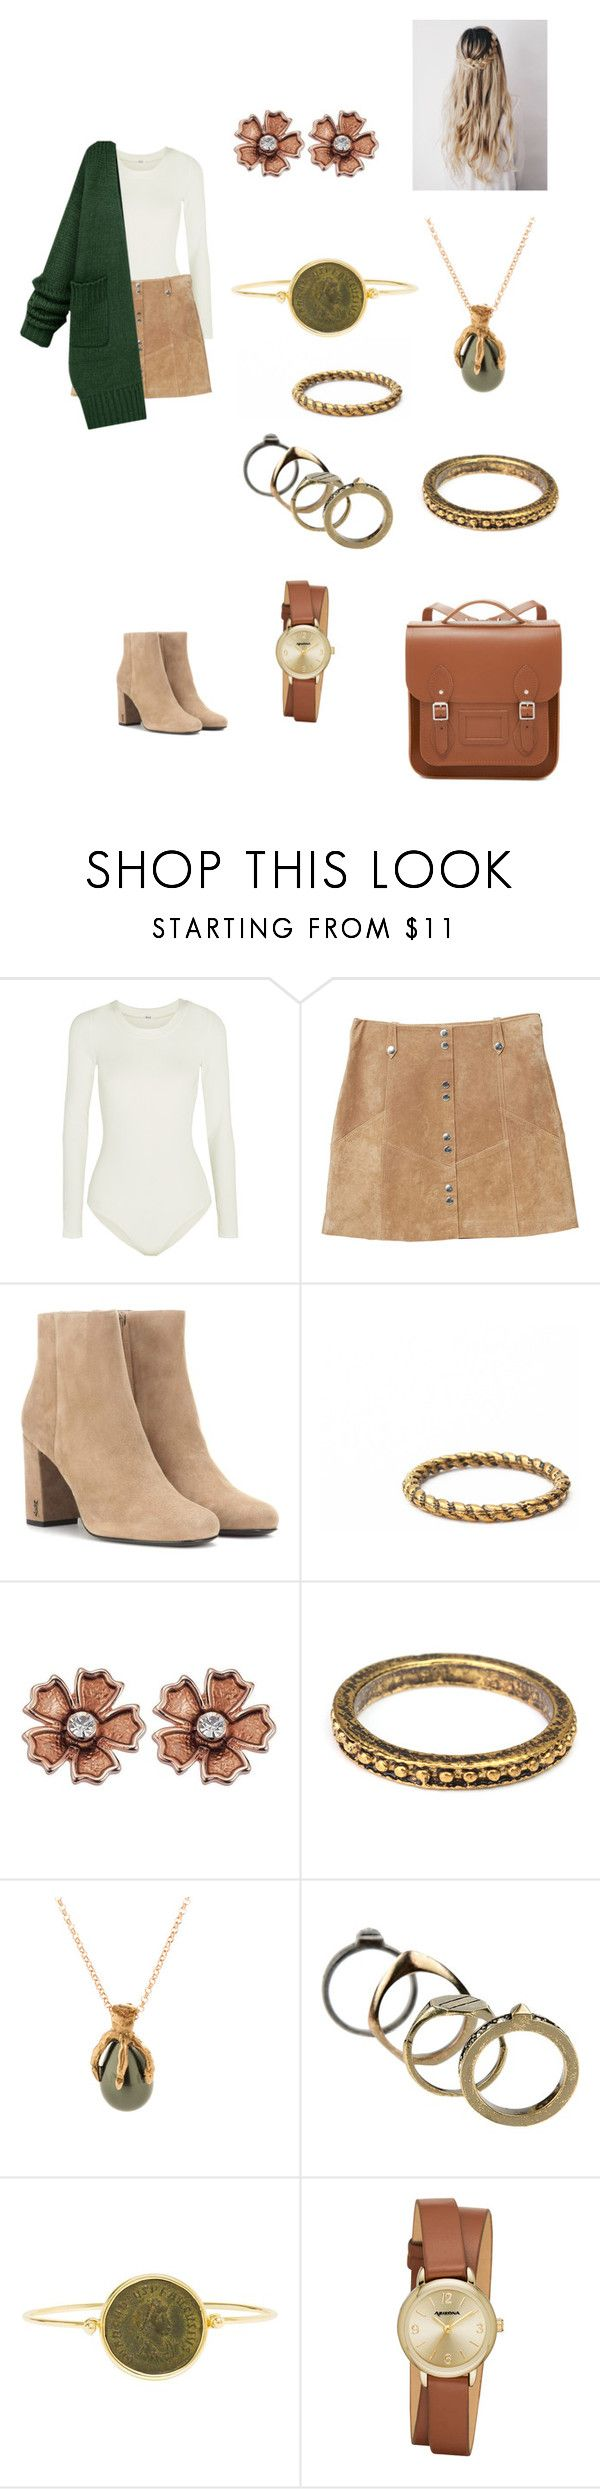 """""""Untitled #639"""" by paty8797 ❤ liked on Polyvore featuring Wolford, MANGO, Yves Saint Laurent, Valentino, Dubini, Arizona and The Cambridge Satchel Company"""